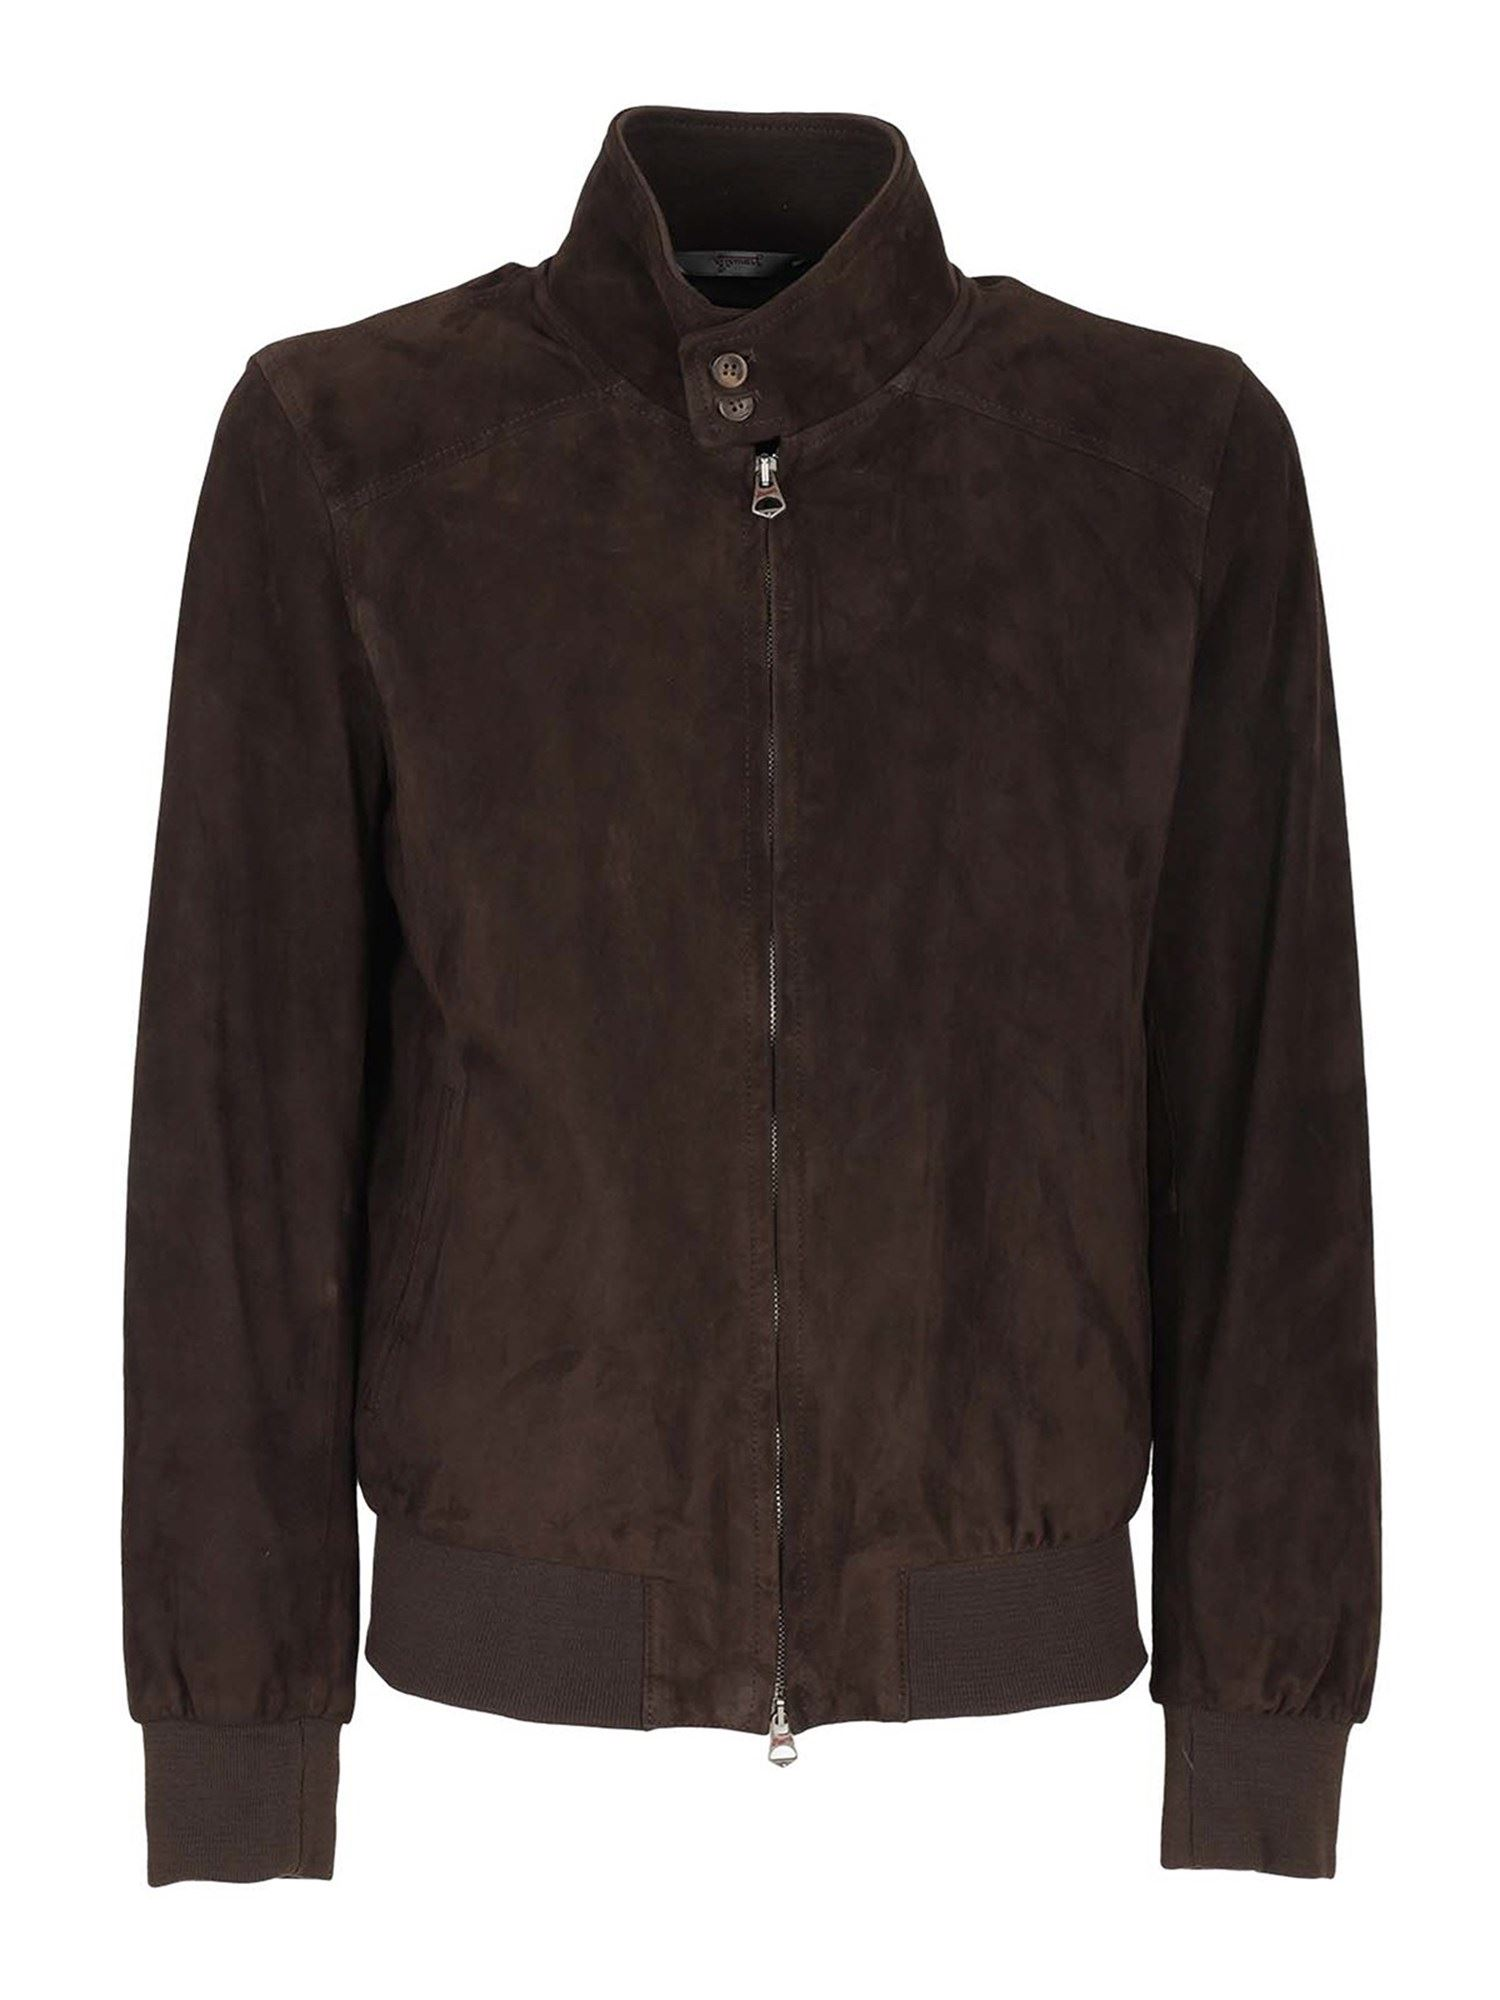 Stewart ARCHIE JACKET IN BROWN